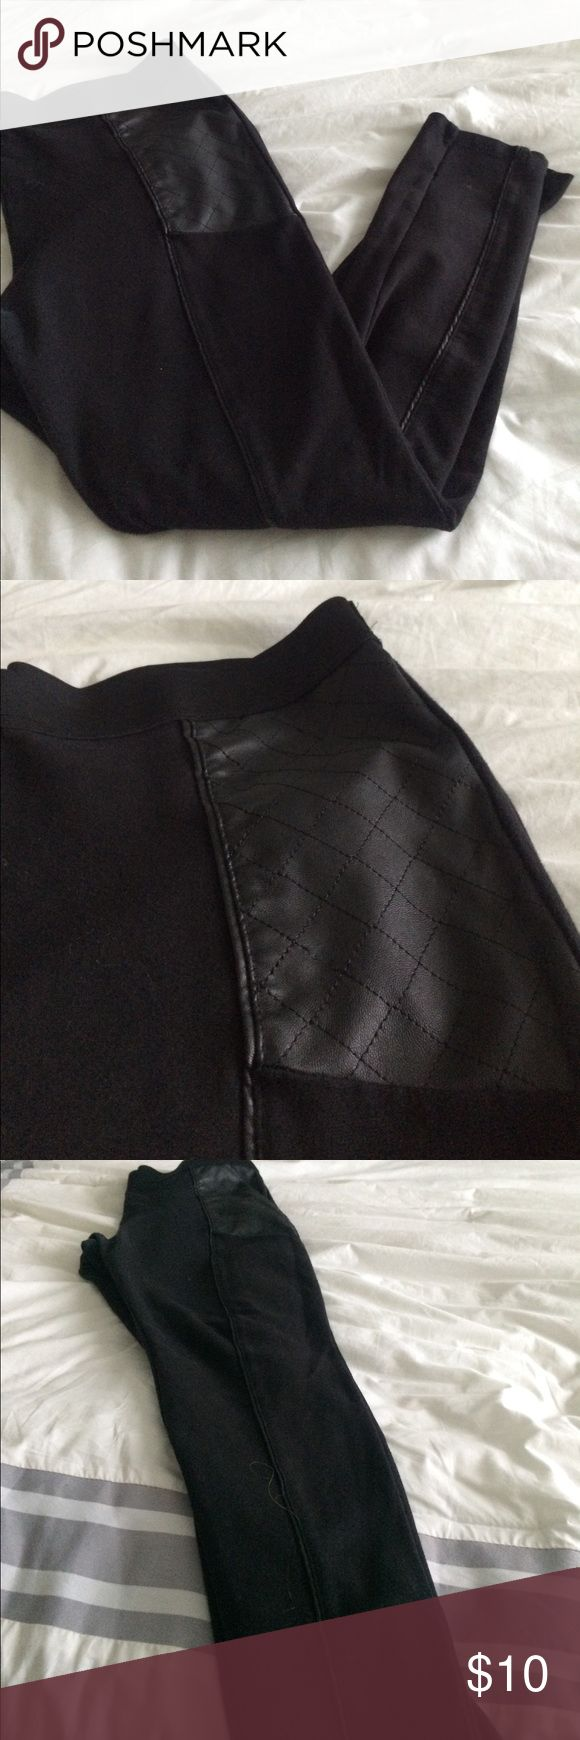 H&M Leggings with Leather Detail NWOT Leather leggings- detail panel on top and seam down front. H&M Pants Leggings